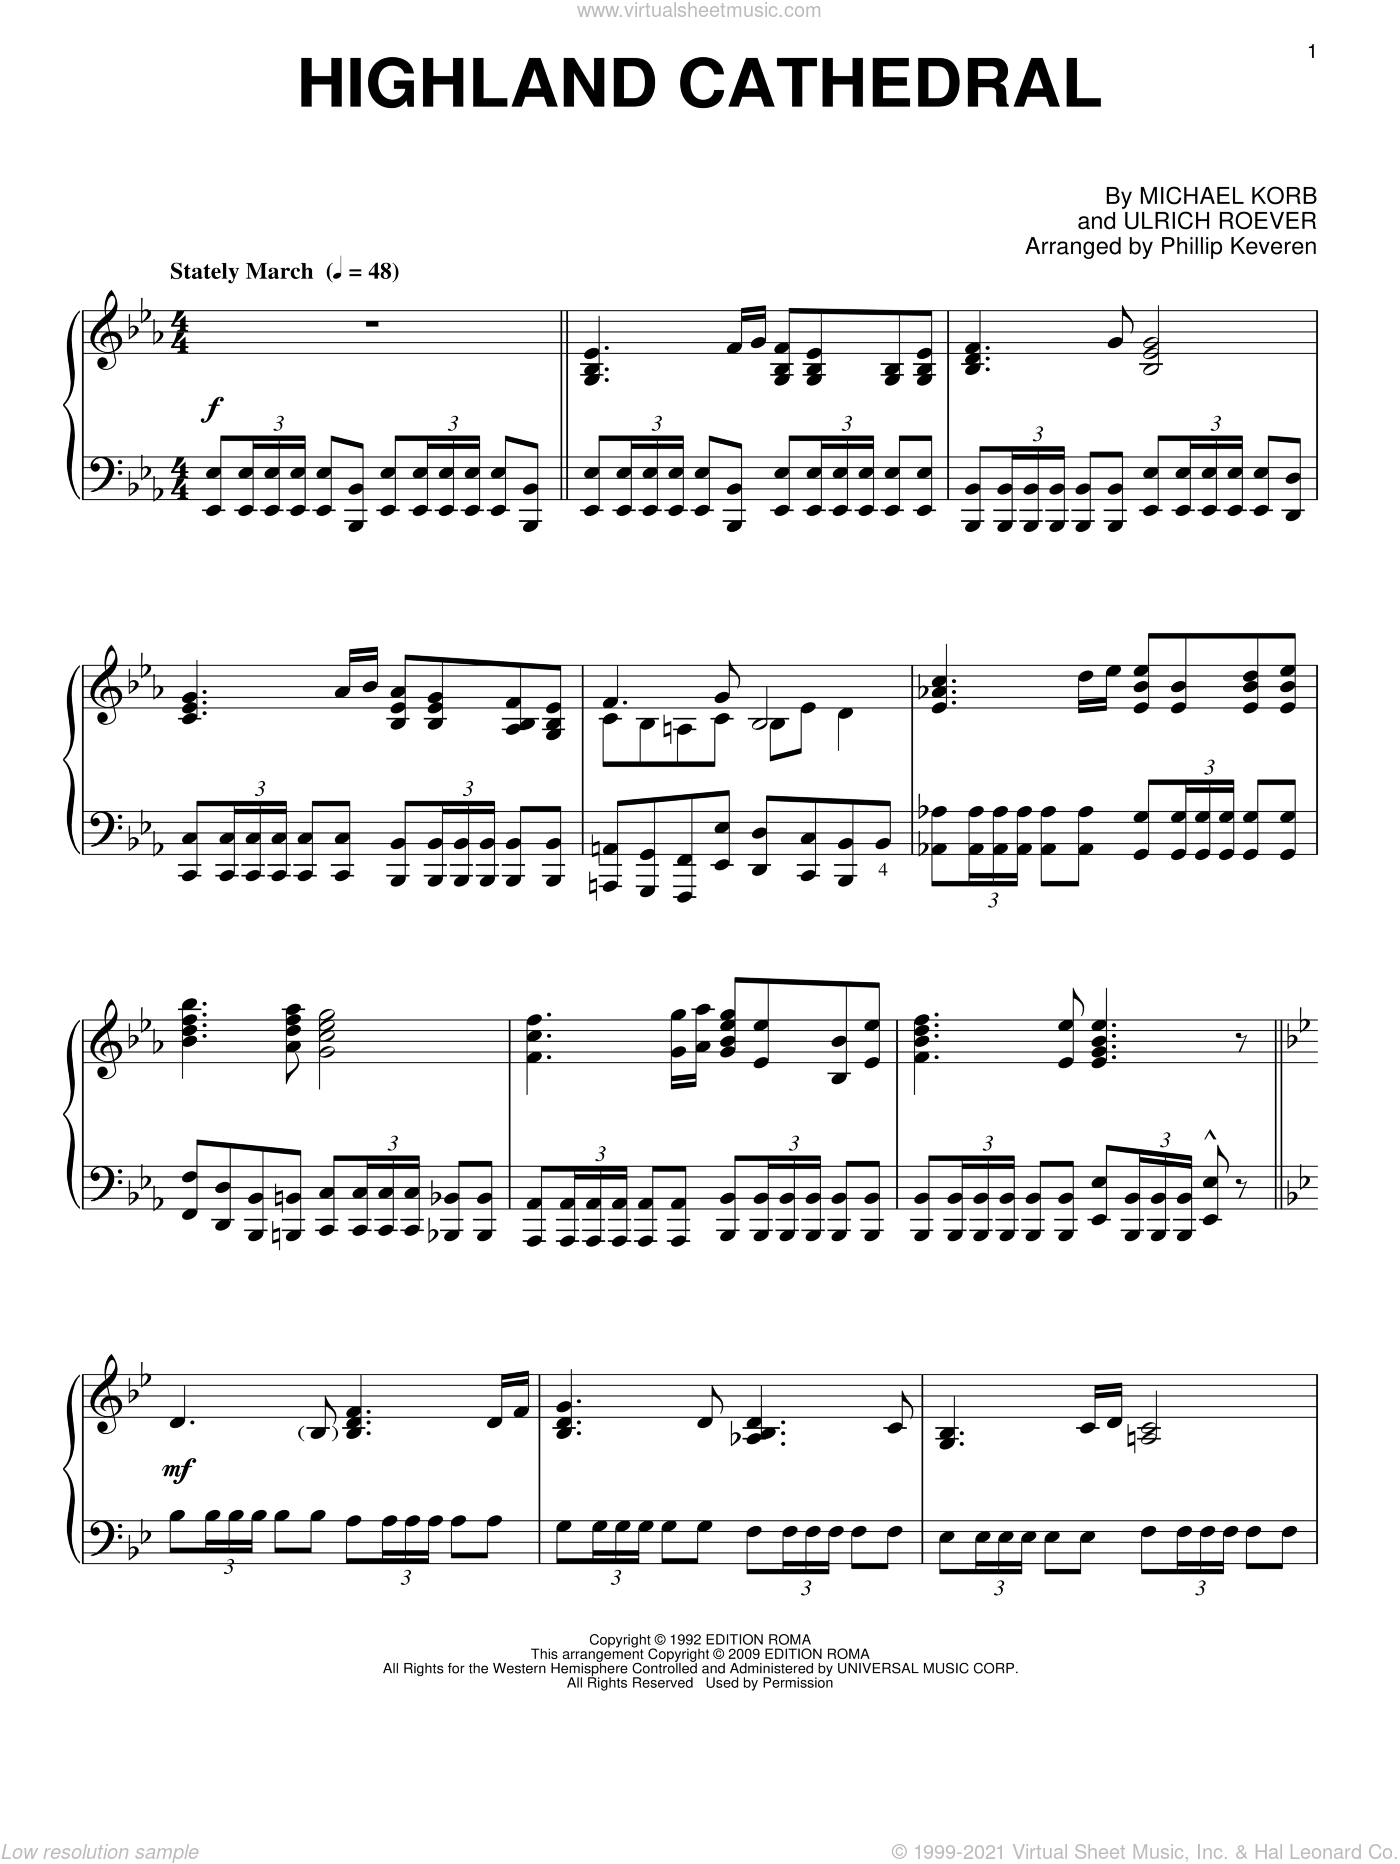 Highland Cathedral sheet music for piano solo by Ulrich Roever